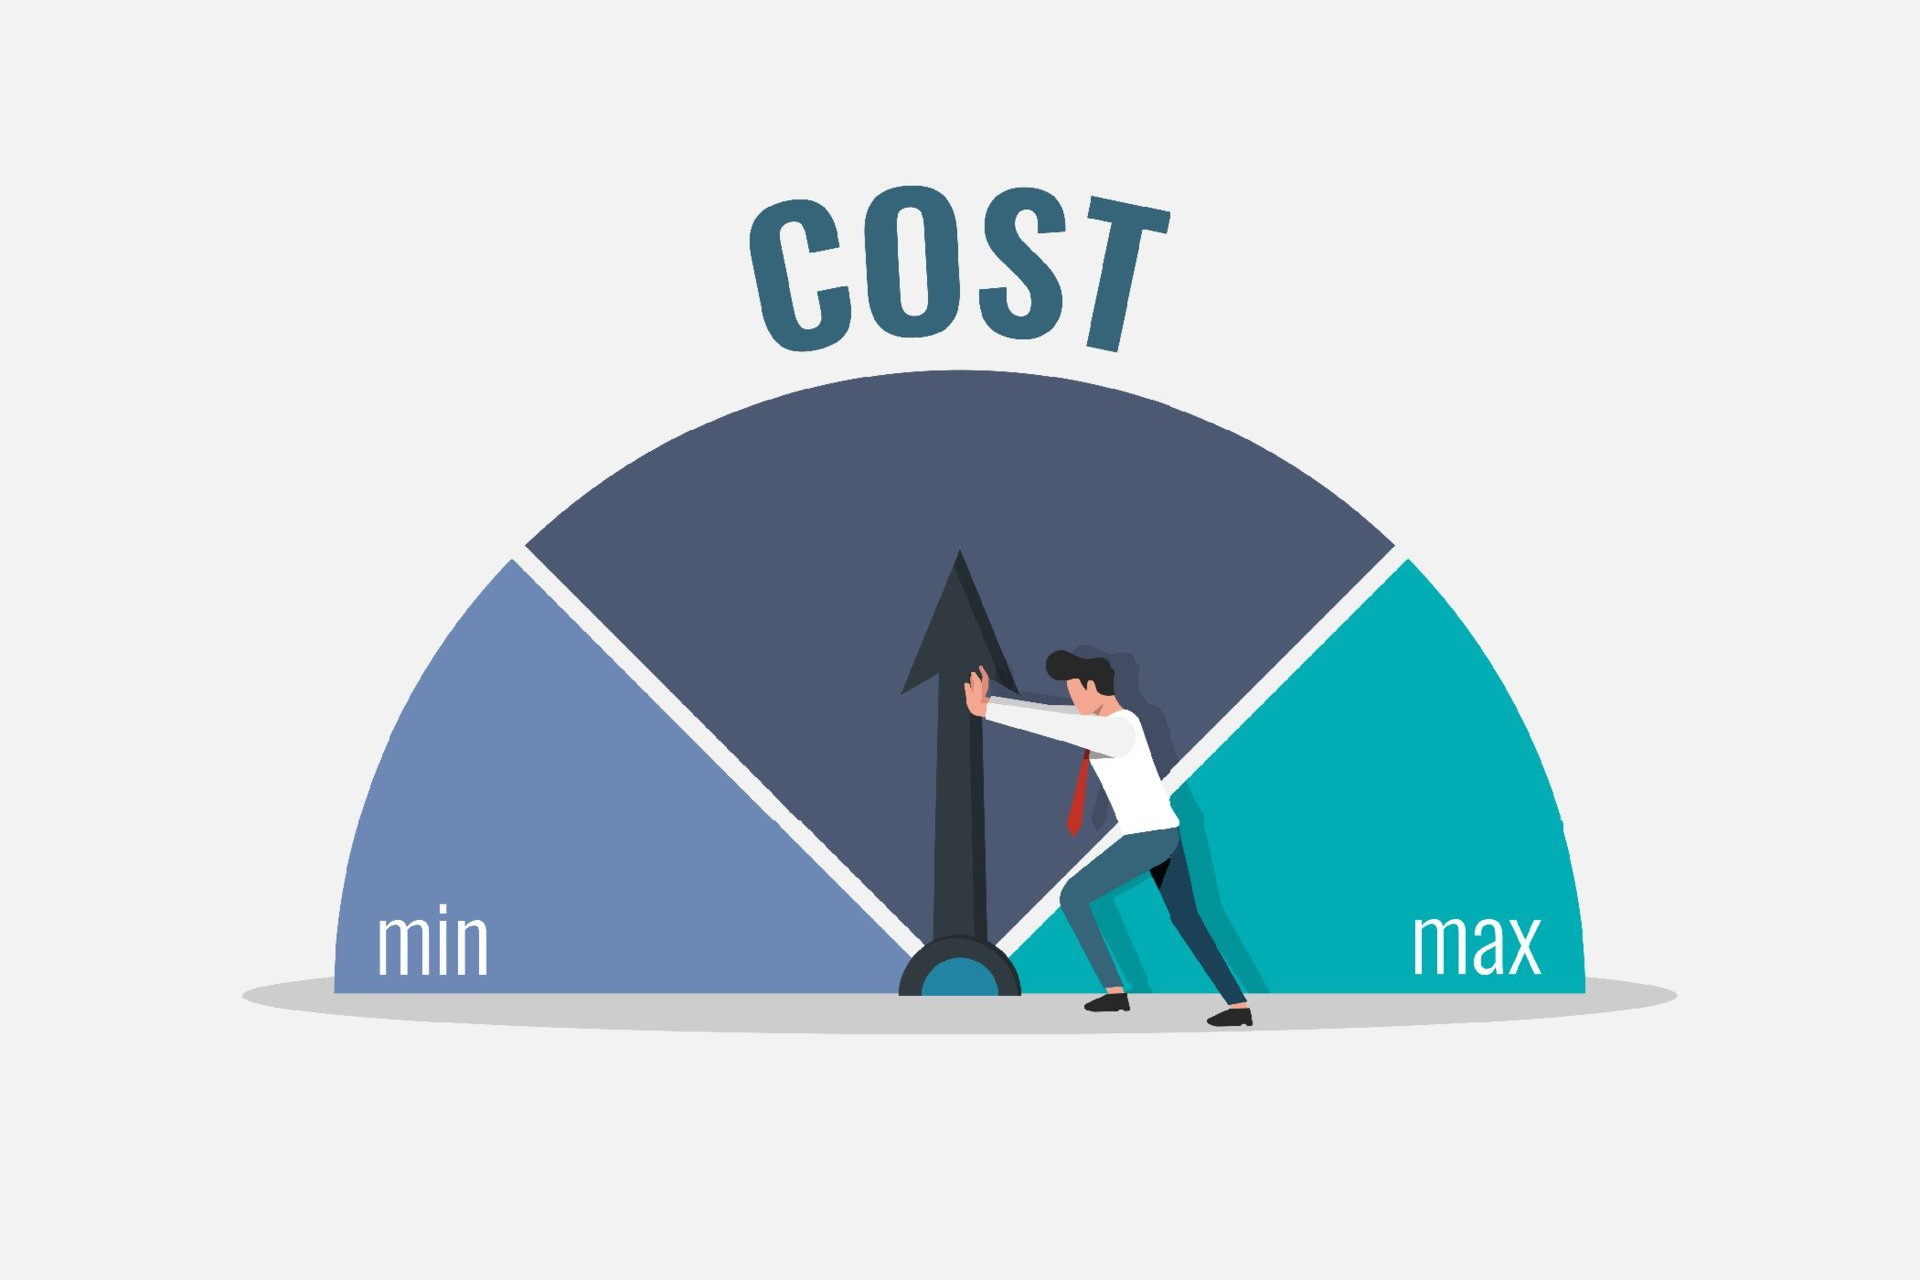 push cost to minimum position